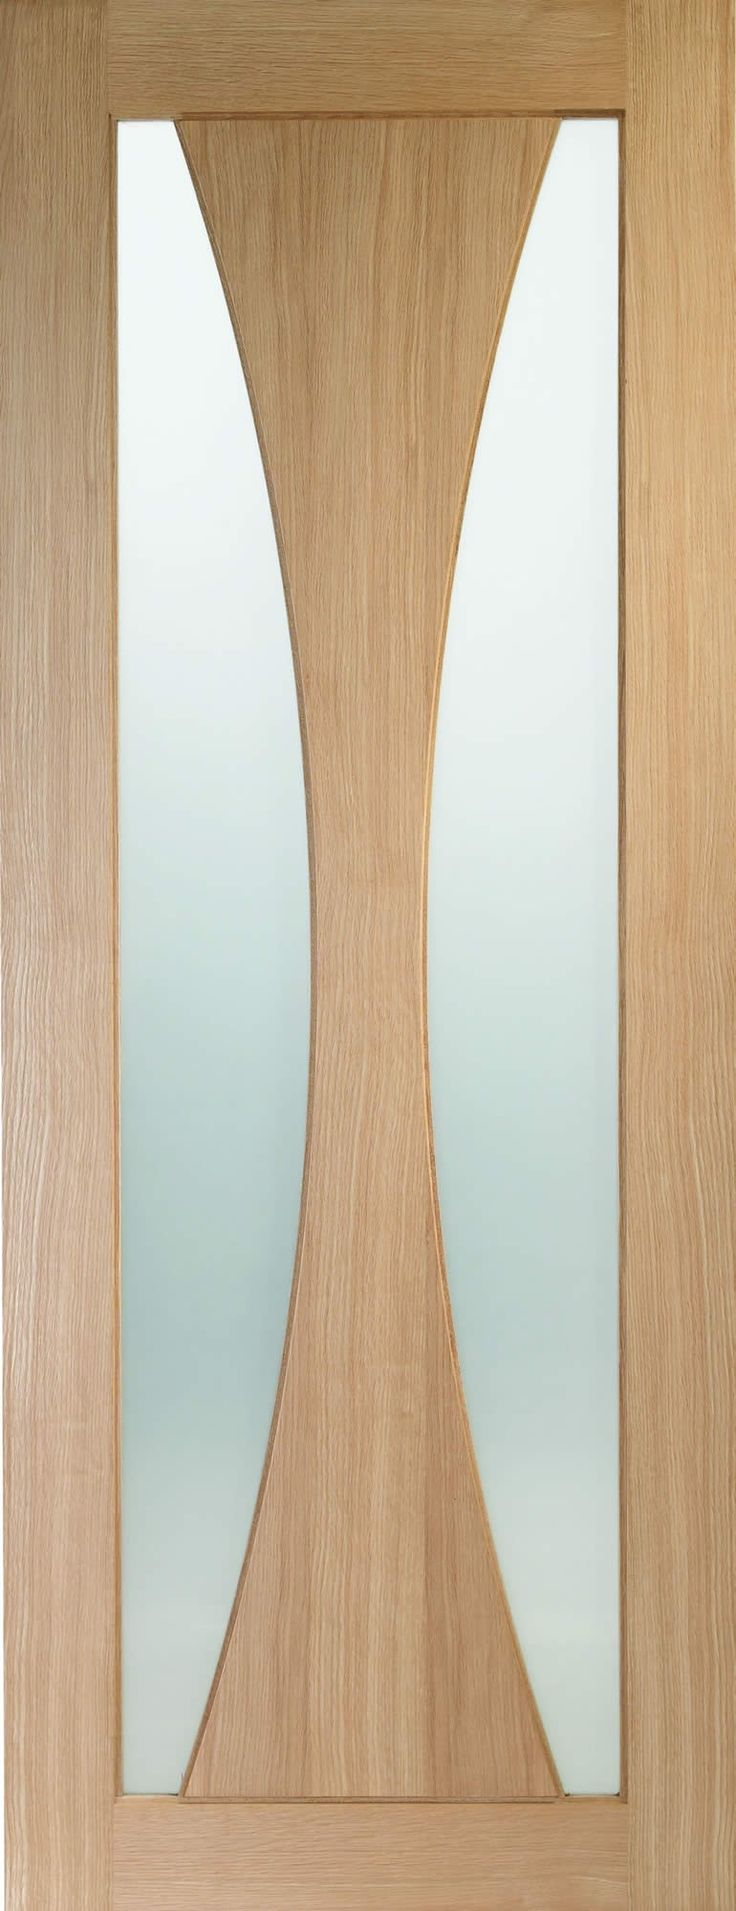 Verona Oak Internal Clear Glazed Fire Door (FD30) - Kaybee Doors